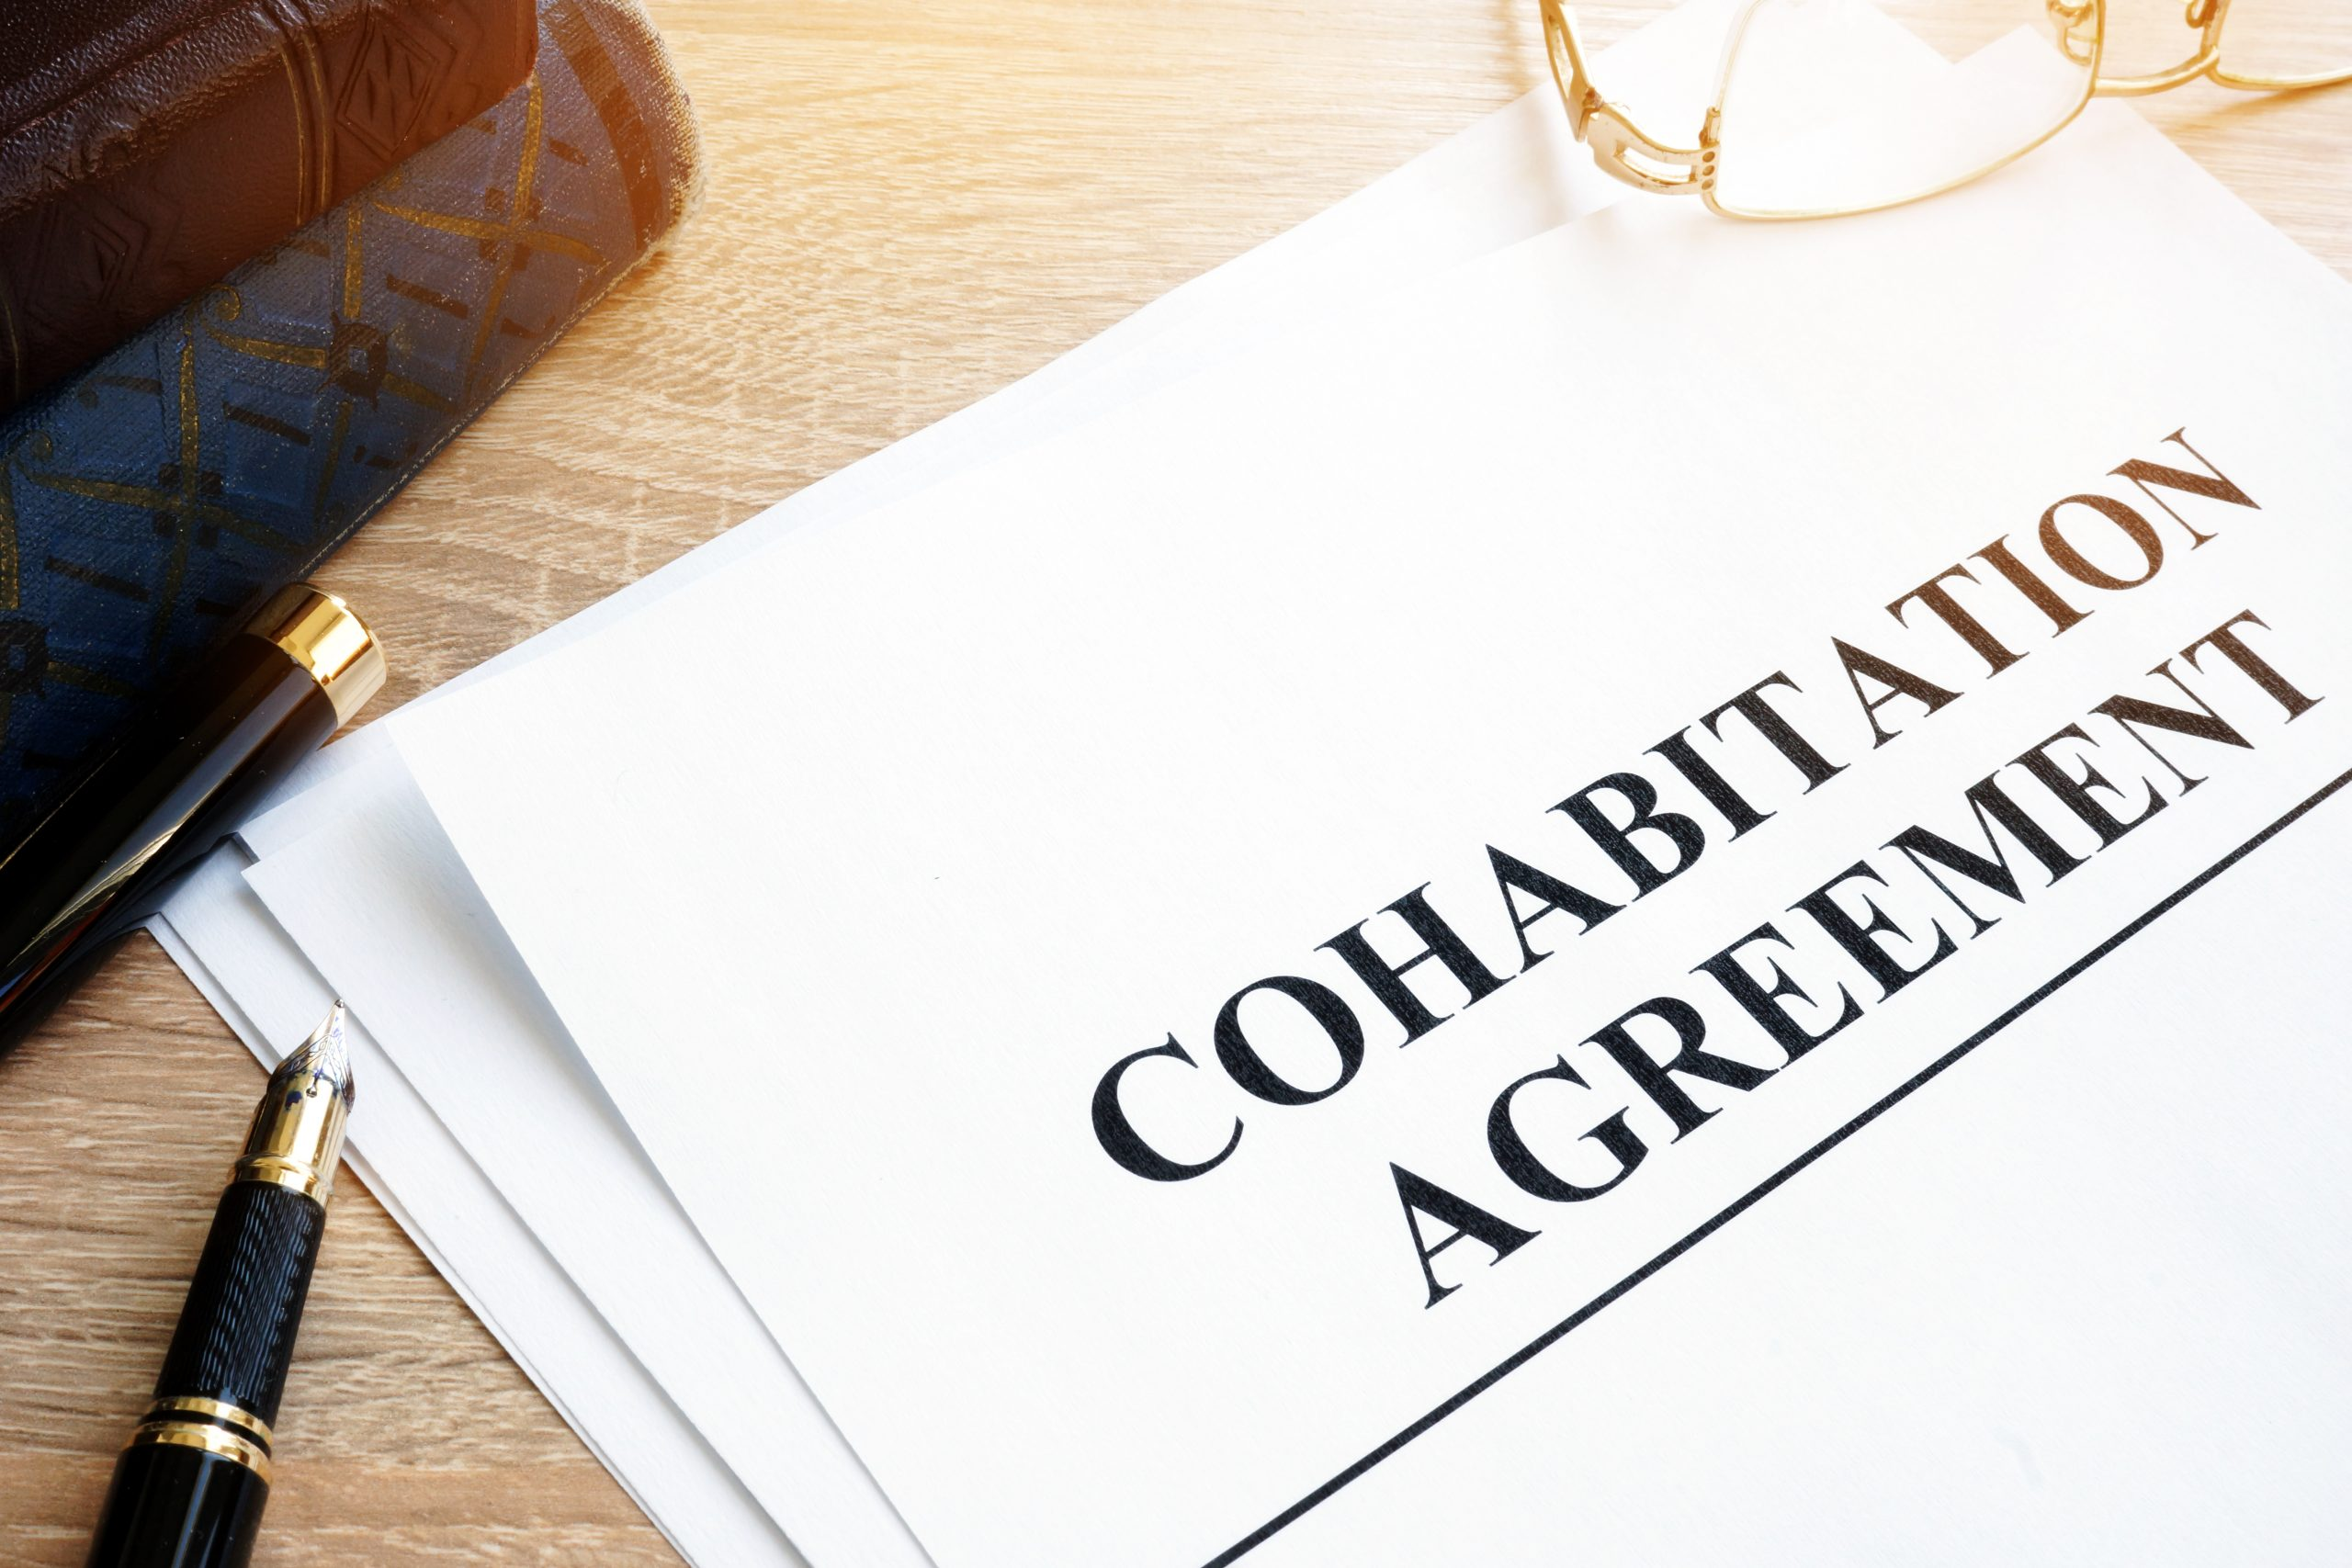 Alimony/Cohabitation